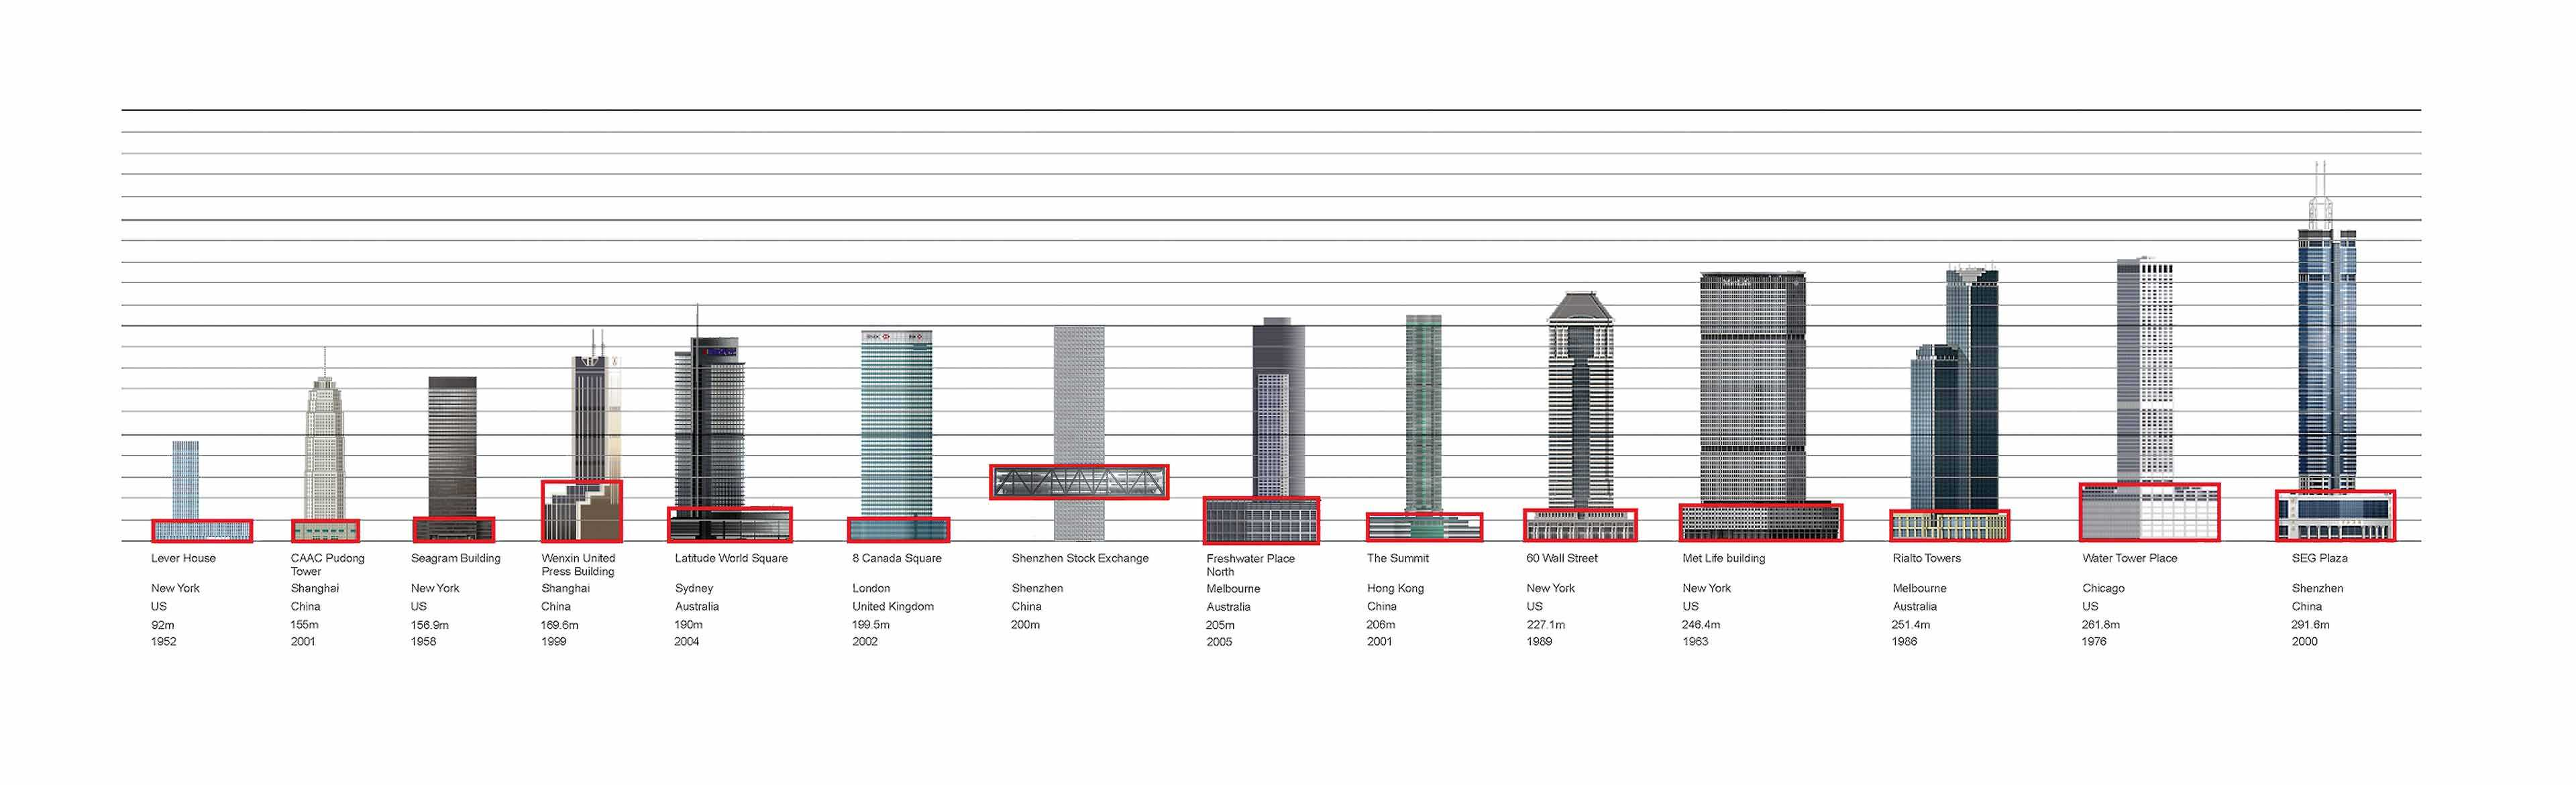 OMA in China  - SZSE podium comparison diagram cOMA 55